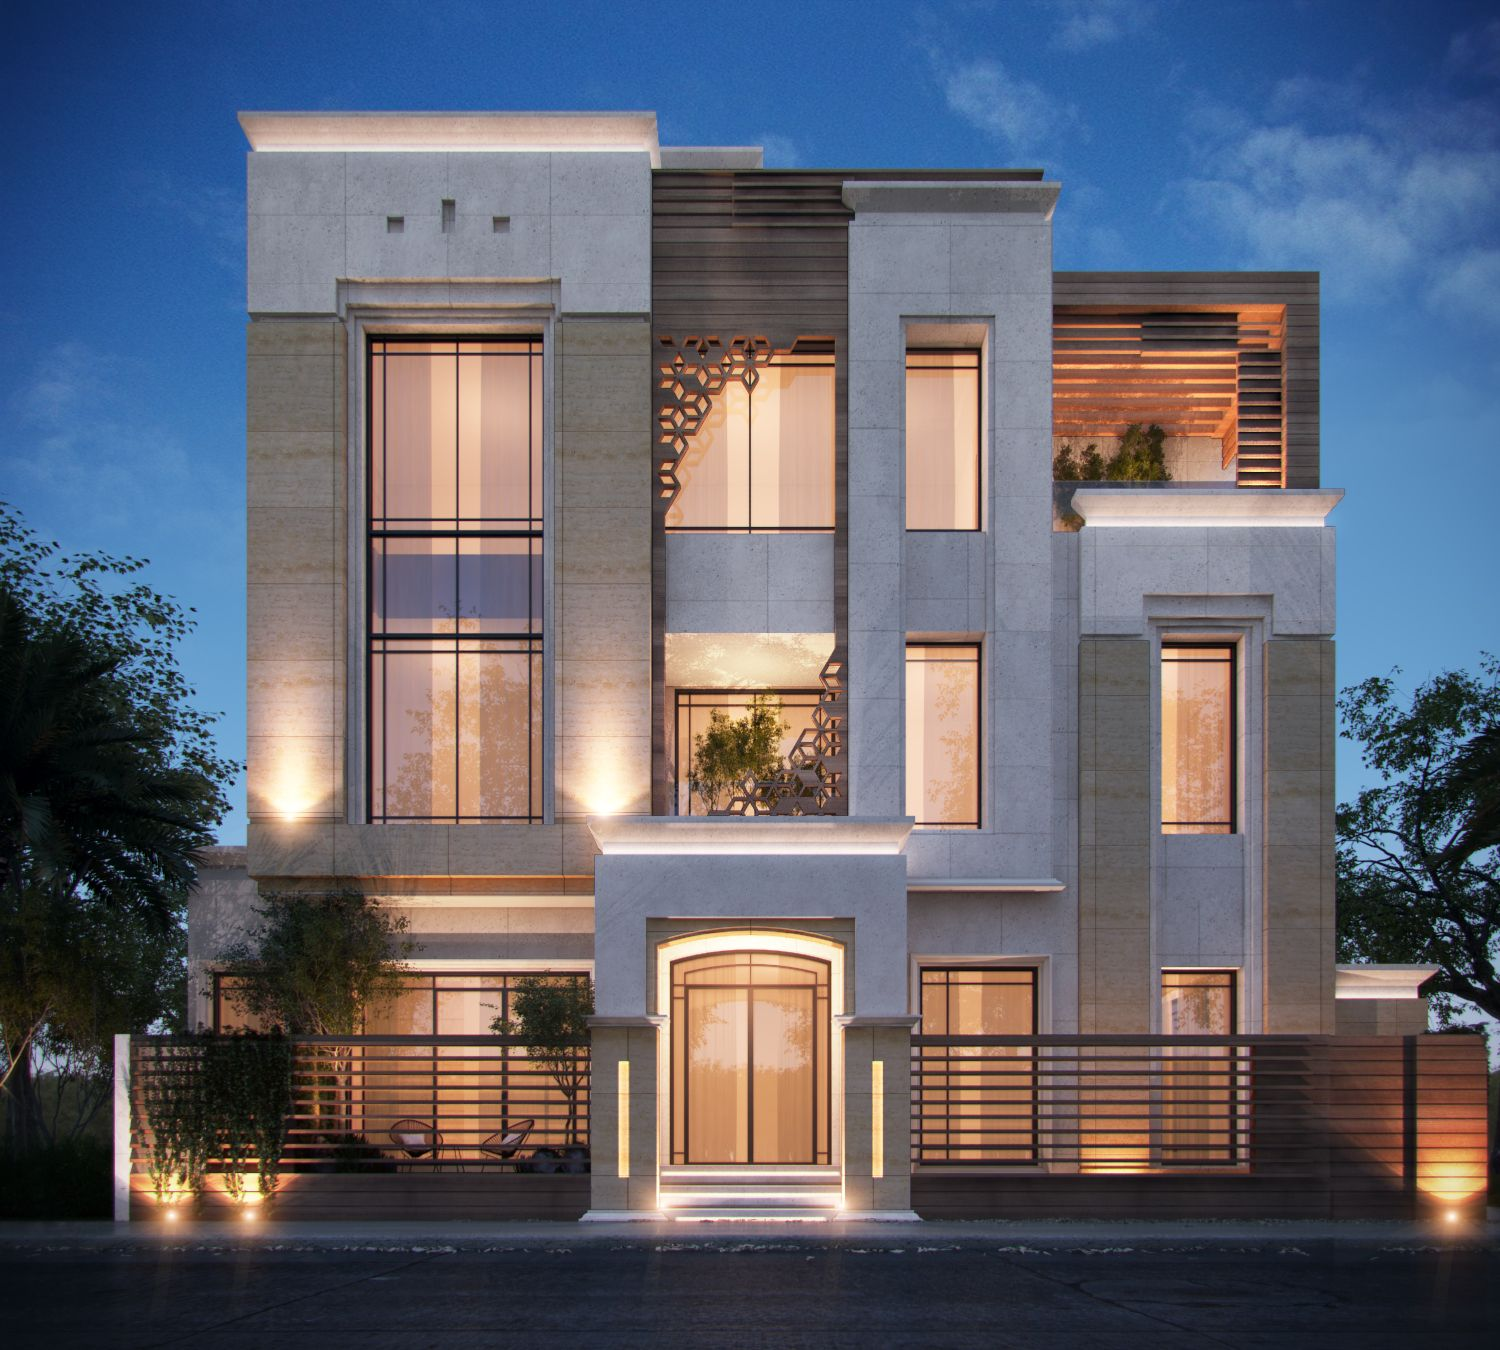 375 m private villa kuwait sarah sadeq architects sarah for Modern villa exterior design